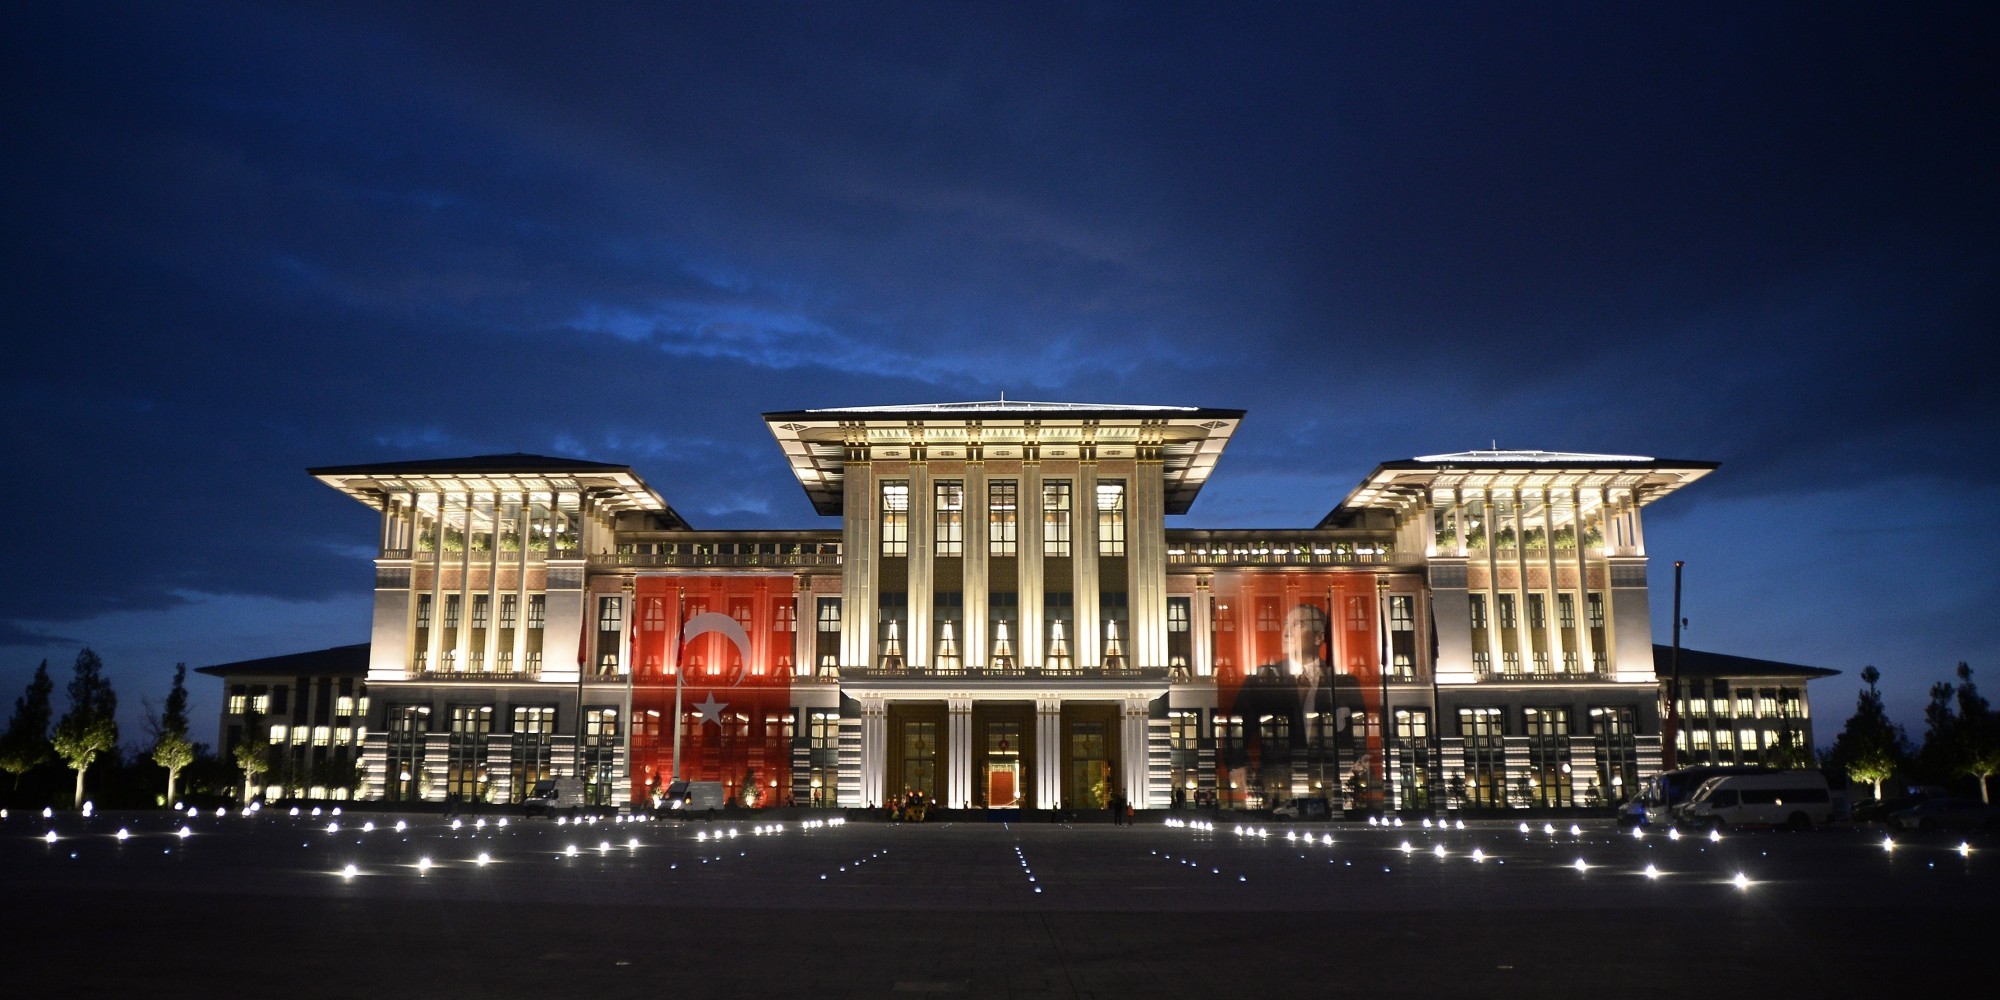 ANKARA, TURKEY - OCTOBER 28: A general view of Turkey's new Presidential Palace, built inside Ataturk Forest Farm and going to be used for Turkey's 91st Republic Day Reception for the first time which is going to be hosted by Turkish President Recep Tayyip Erdogan and his wife Emine Erdogan on October 29, is seen in Ankara, Turkey on October 28, 2014. (Photo by Volkan Furuncu/Anadolu Agency/Getty Images)